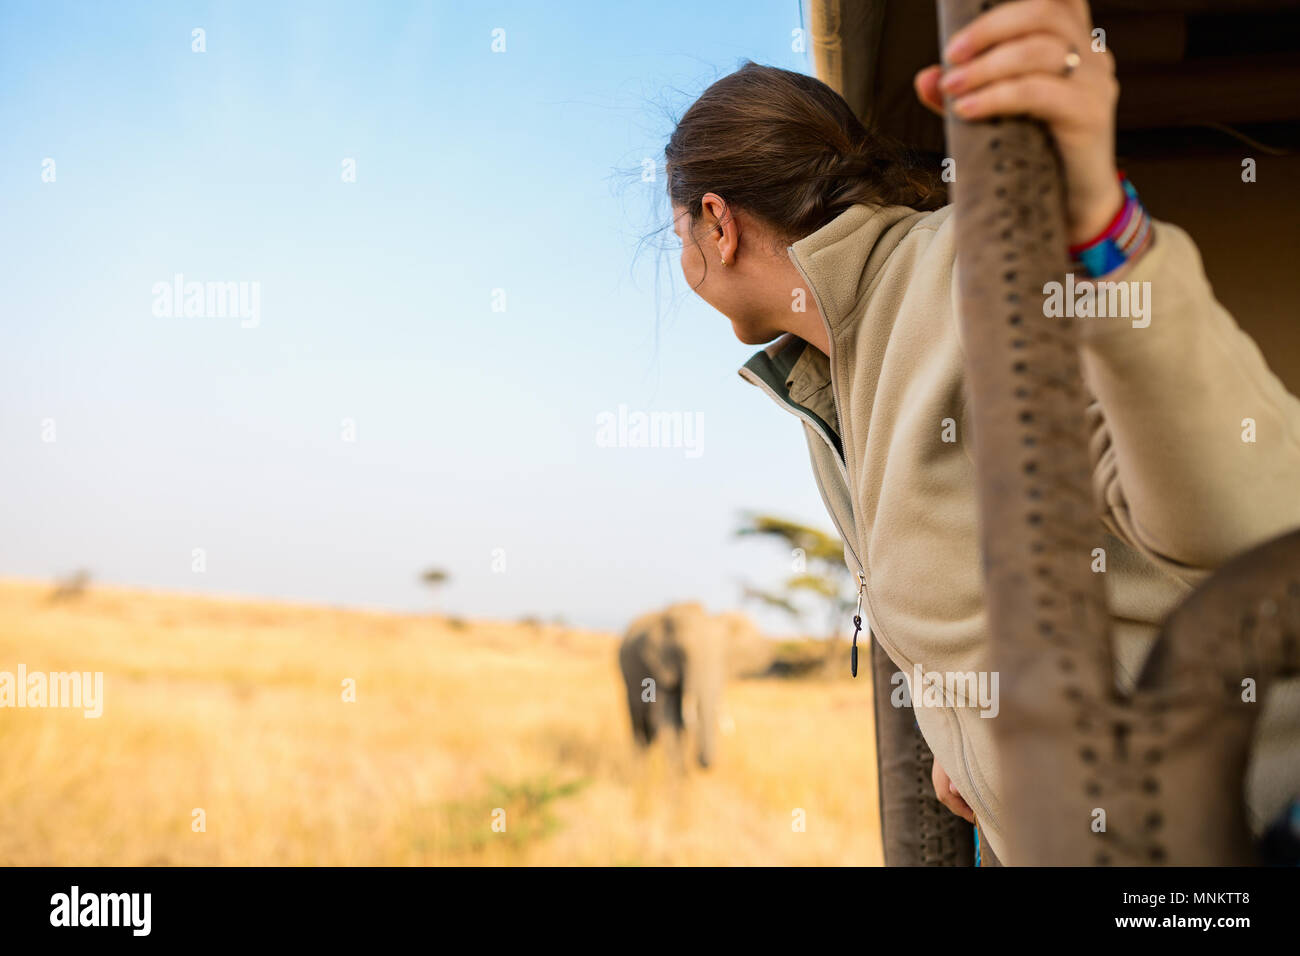 Woman on safari game drive enjoying close encounter with elephants in Kenya Africa - Stock Image